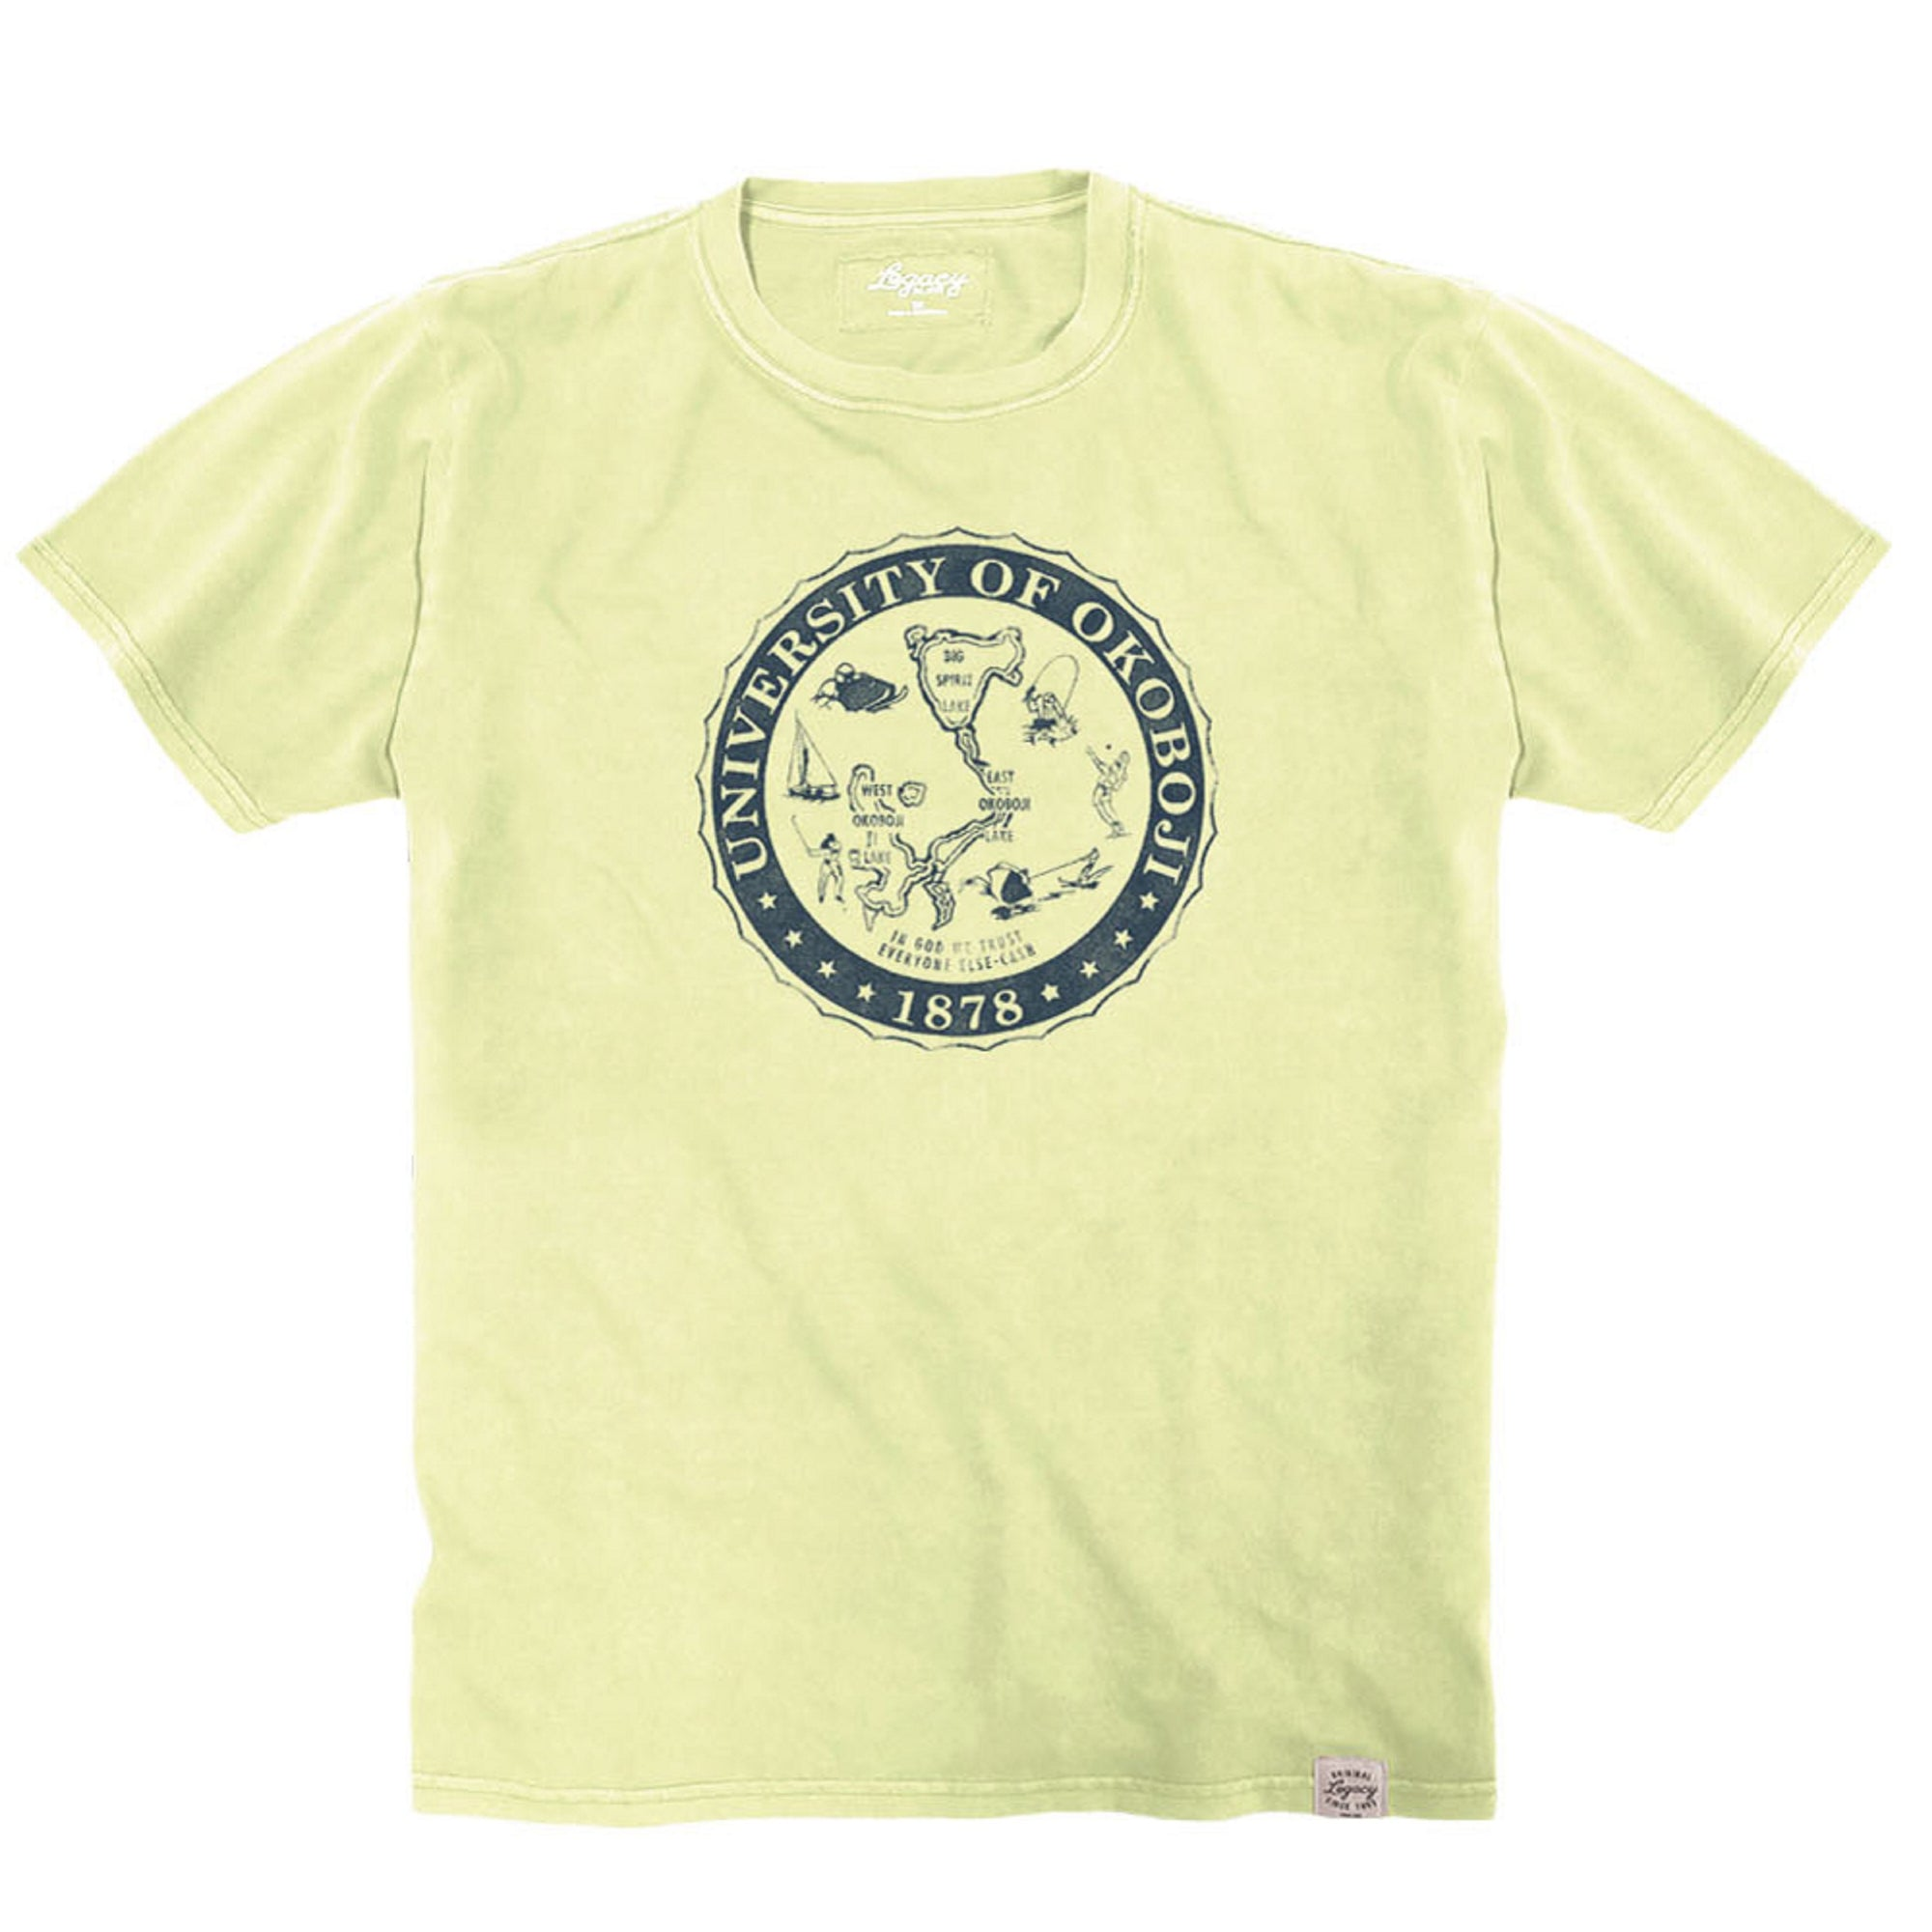 U of O Lemon Crest Youth Vintage Wash Crewneck Tee